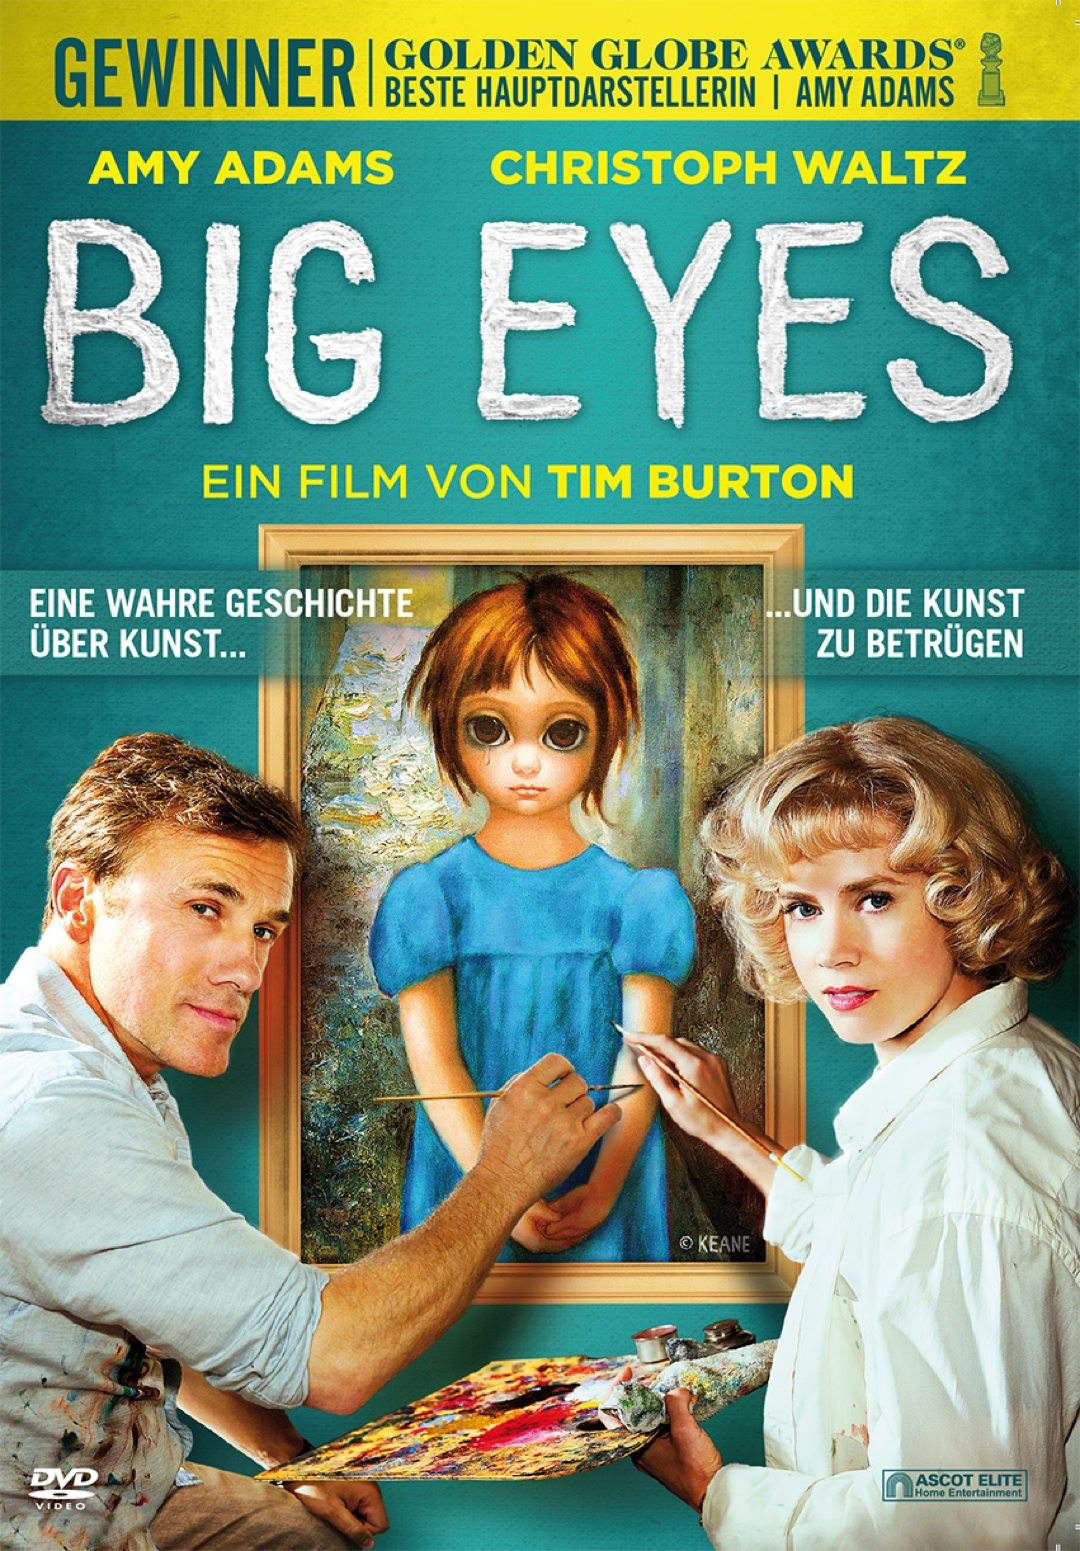 Big Eyes | @pokipsie's Film Tipps